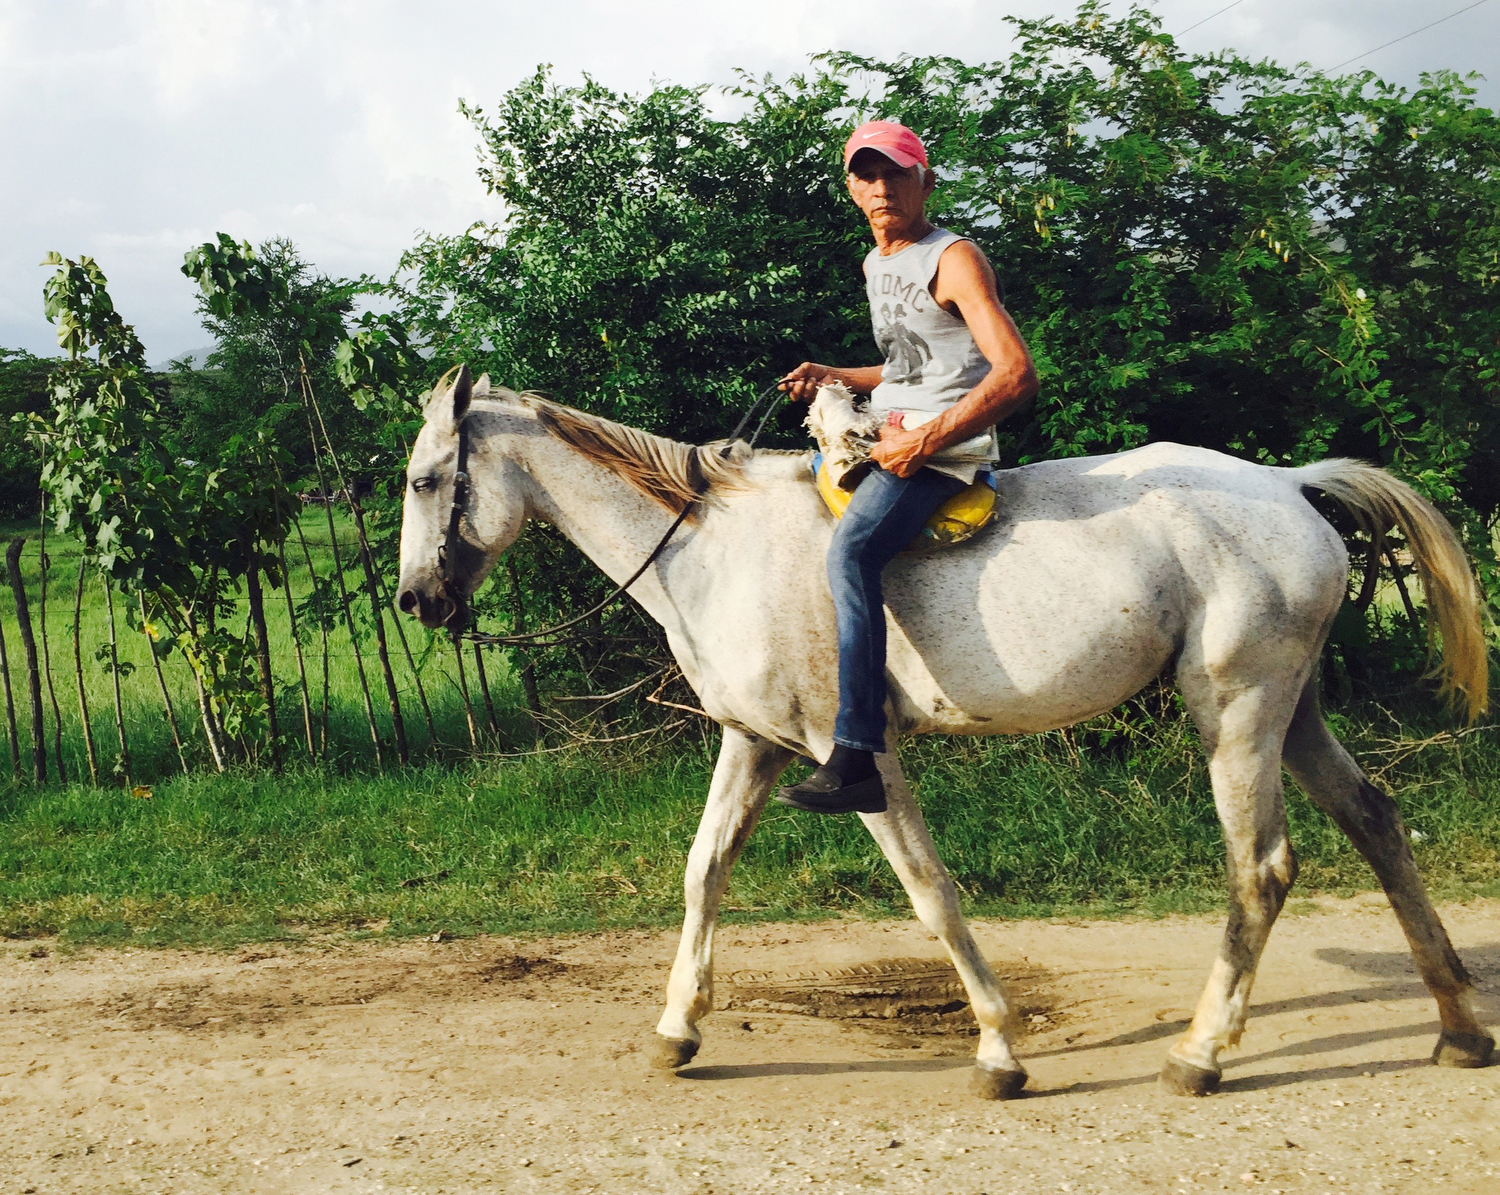 A man rides horse back near the small village towns in the Sierra Maestra mountain region outside of Santiago de Cuba. Many still ride horse carriages in the city to work.